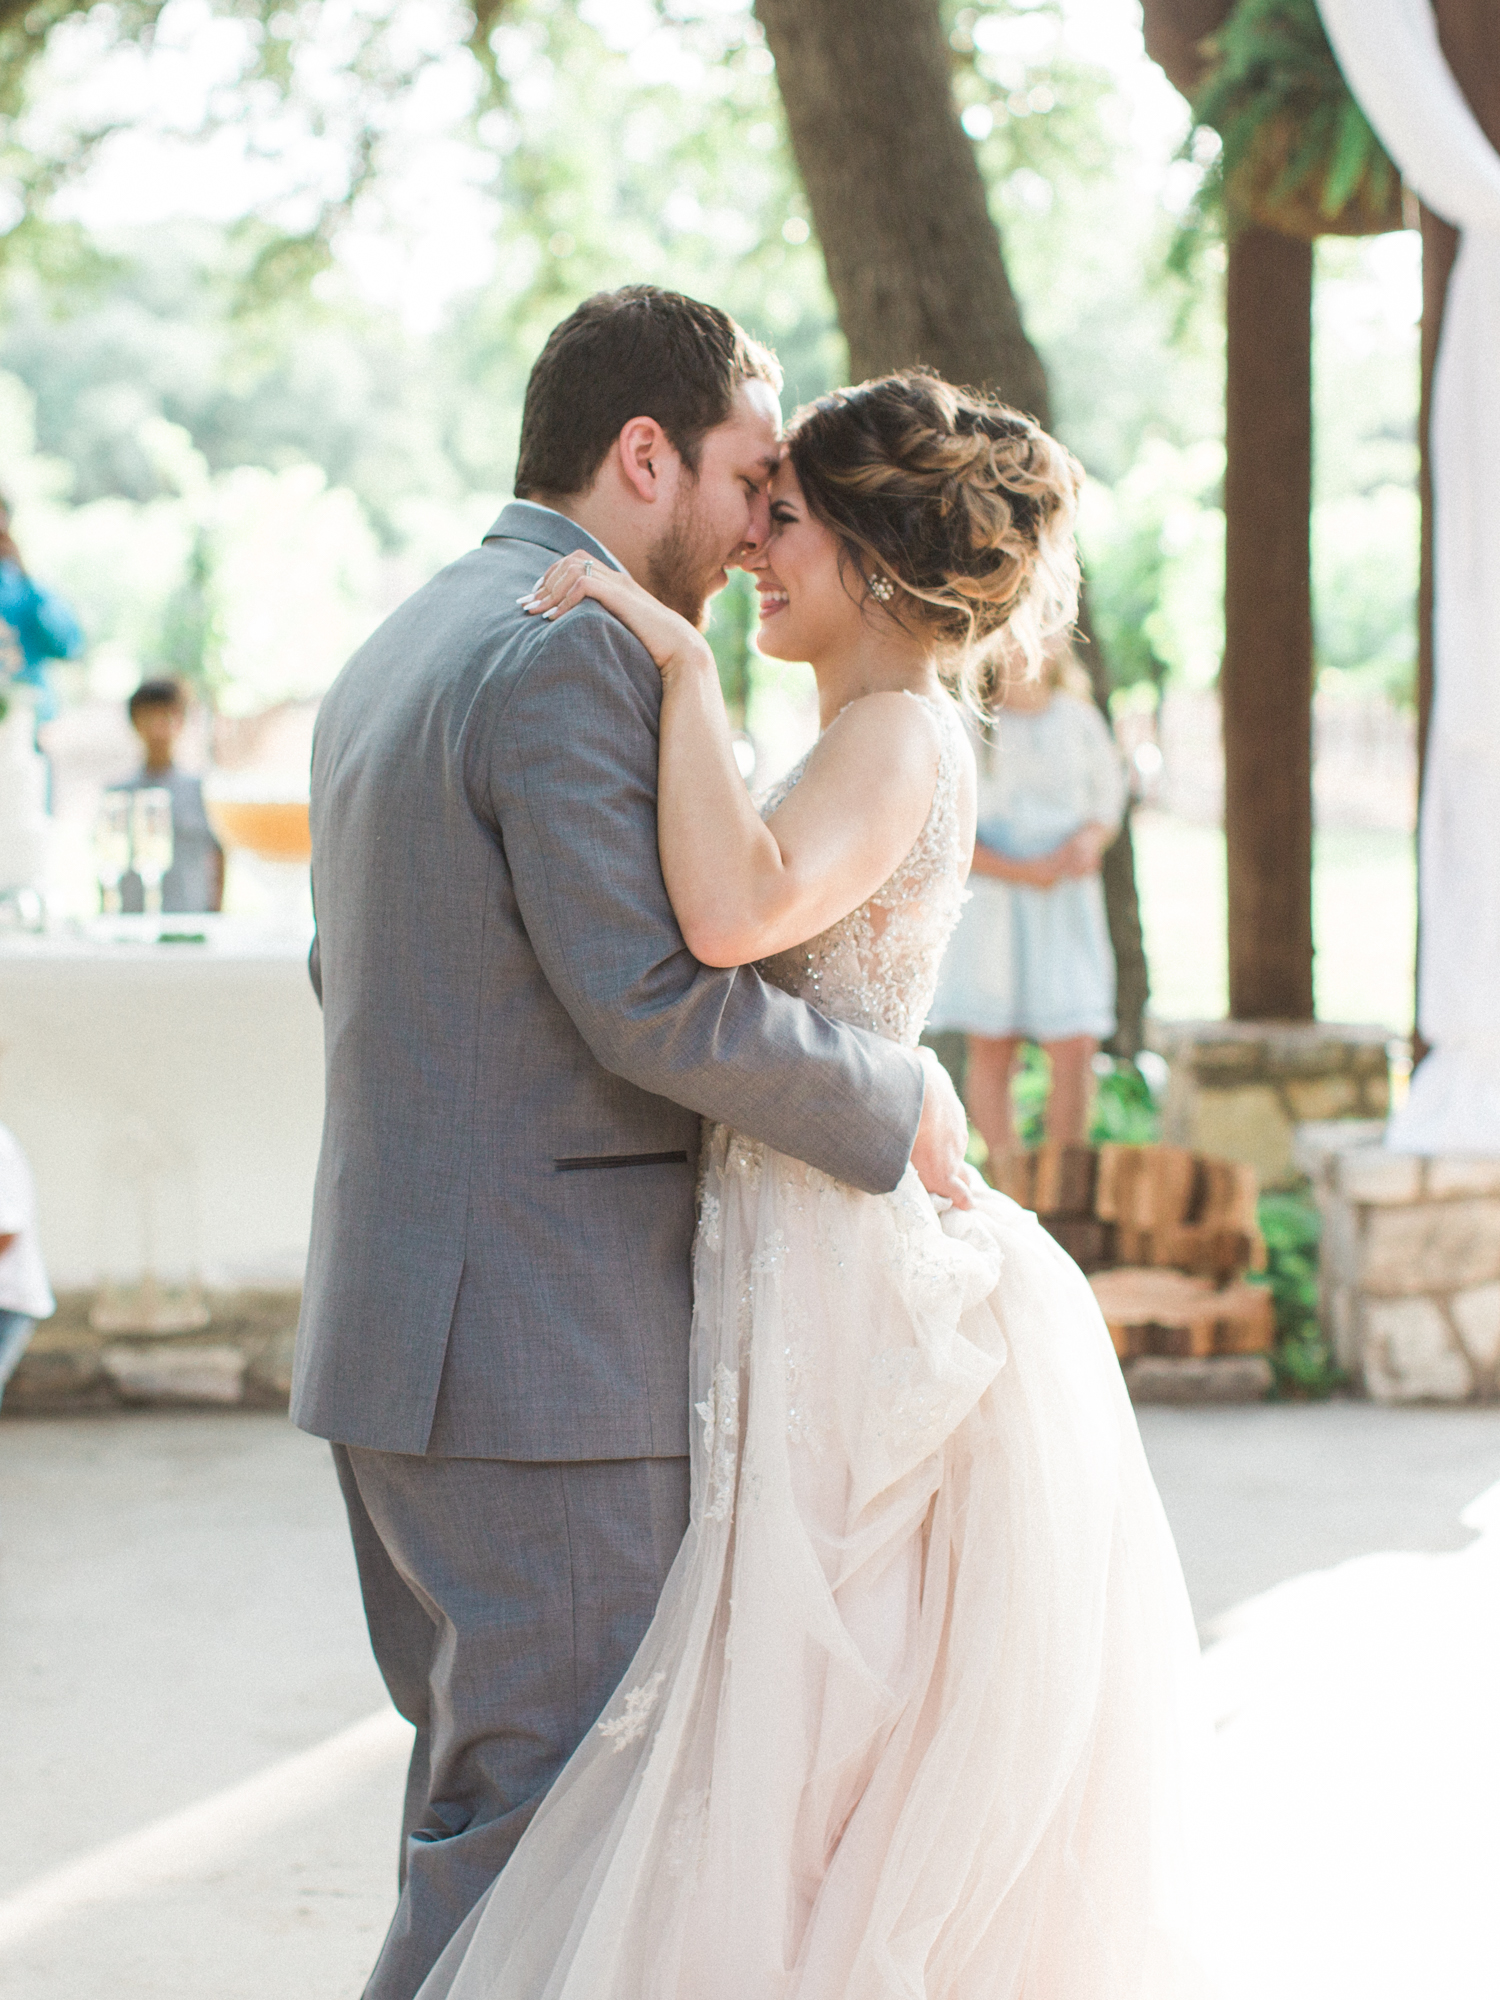 Elegant Spring Vineyard Wedding | Film Wedding Photographer | Austin Wedding Photographer | Bride and Groom Sweet First Dance | Britni Dean Photography // britnidean.com